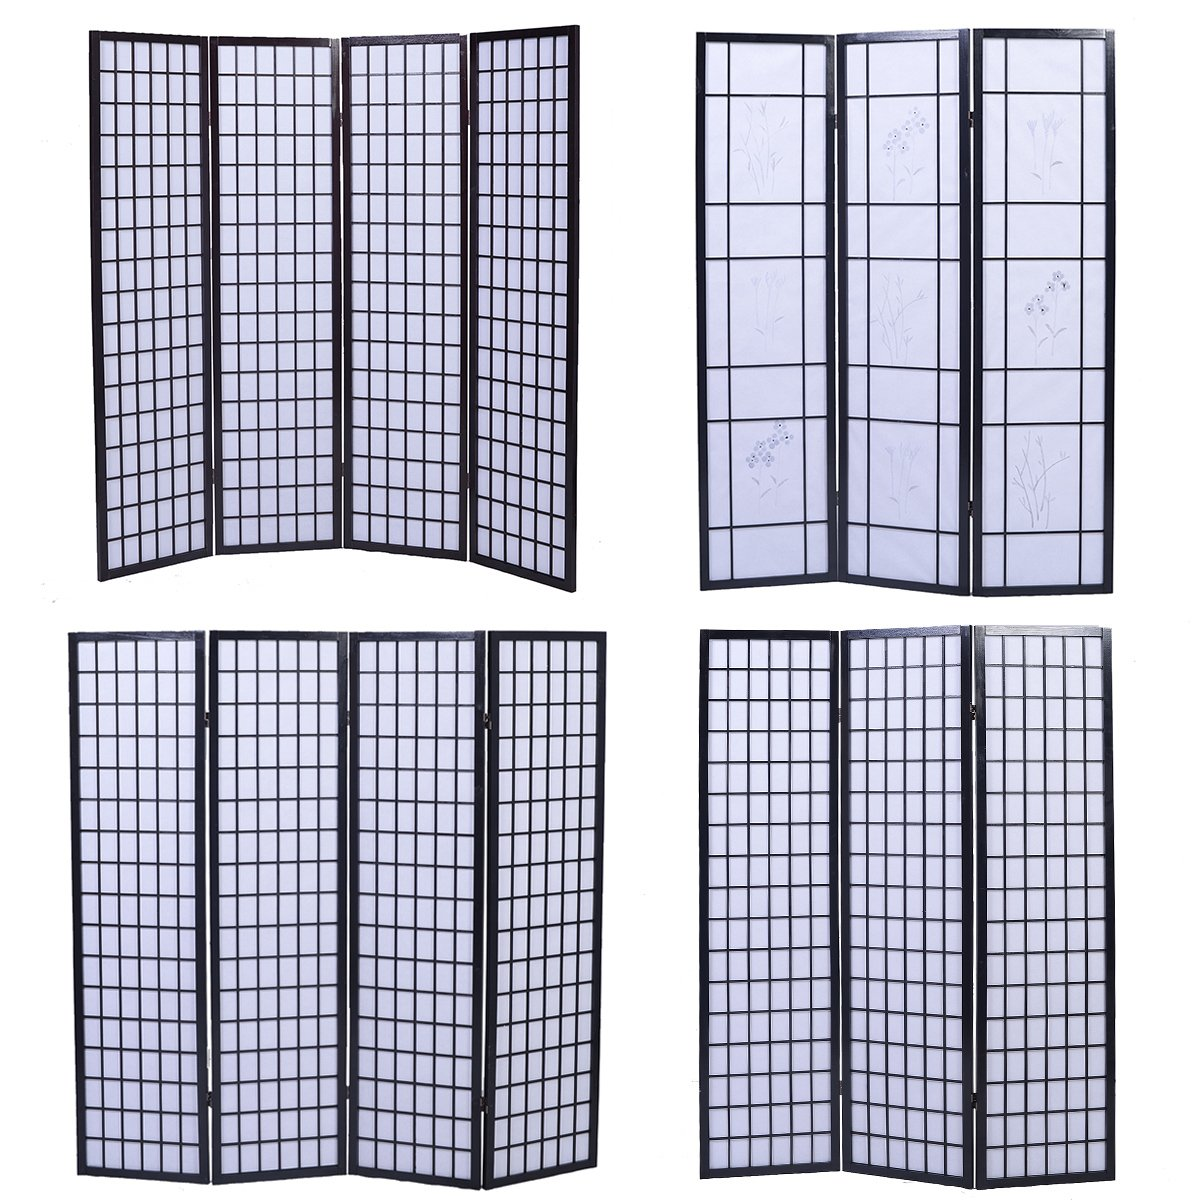 Stupendous Casart Folding Room Divider Screen 3 4 Partition Wall Panel Privacy Furniture Separator Paravent Best Bedroom Panel Screens Download Free Architecture Designs Scobabritishbridgeorg